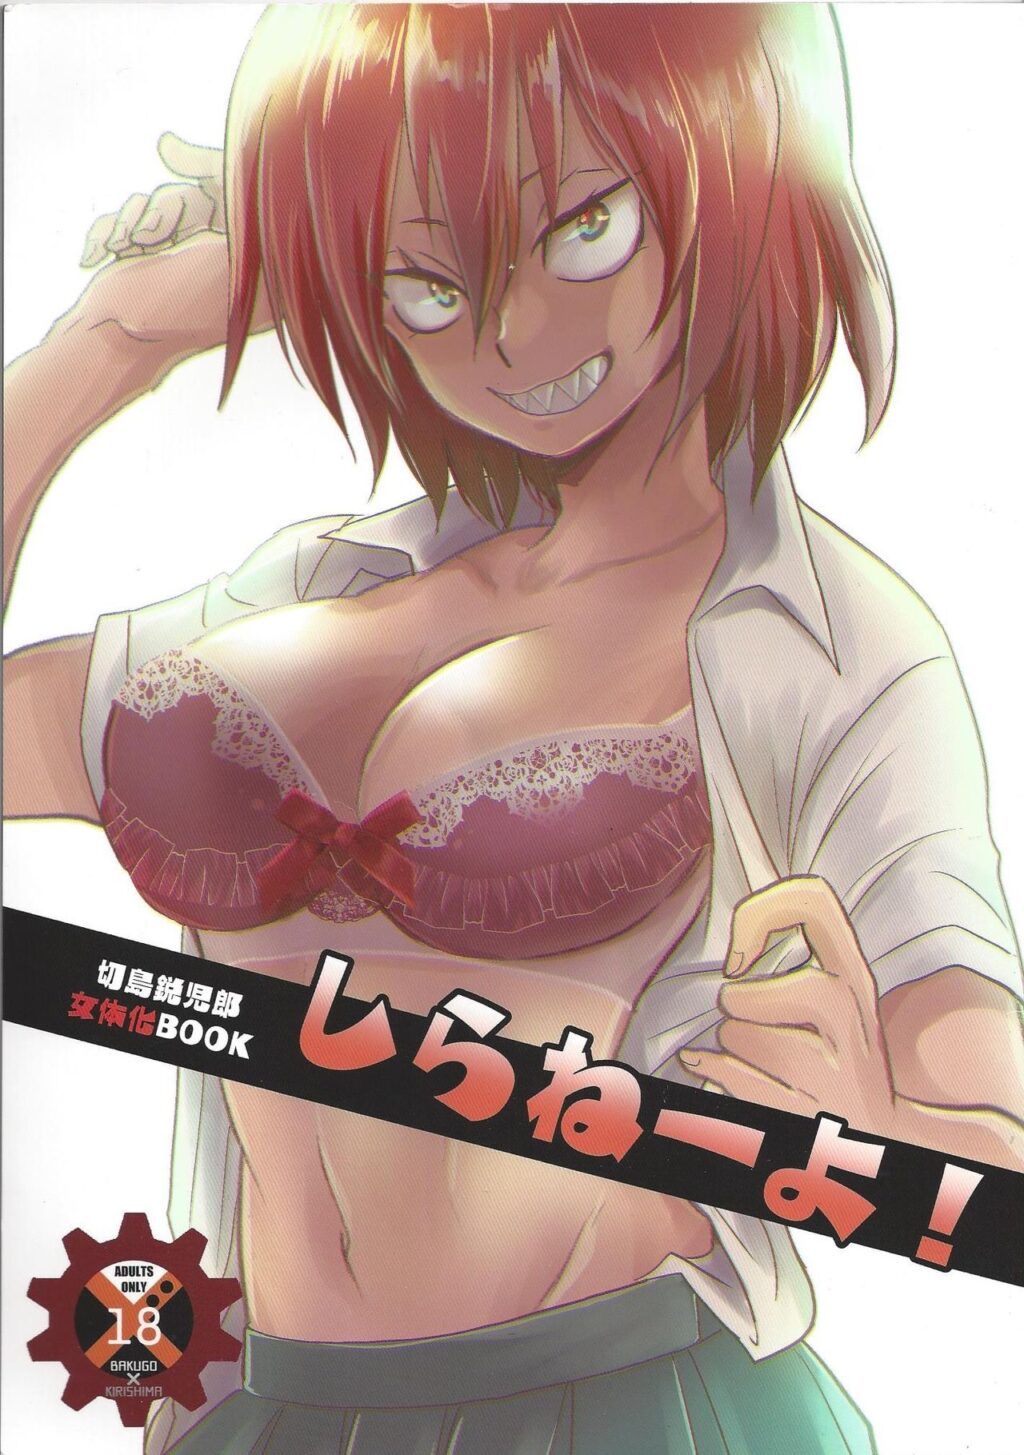 My-Hero-Academia-Gender-Bender-Male-domination-Anime-Porn-Comics-Katsuki-Bakugou-Fucks-Red-Rocket-Eijirou-kirishima-turned-out-seductive-hentai-manga-sucking-cock-riding-Hit-by-the-Gender-Bender-Quirk